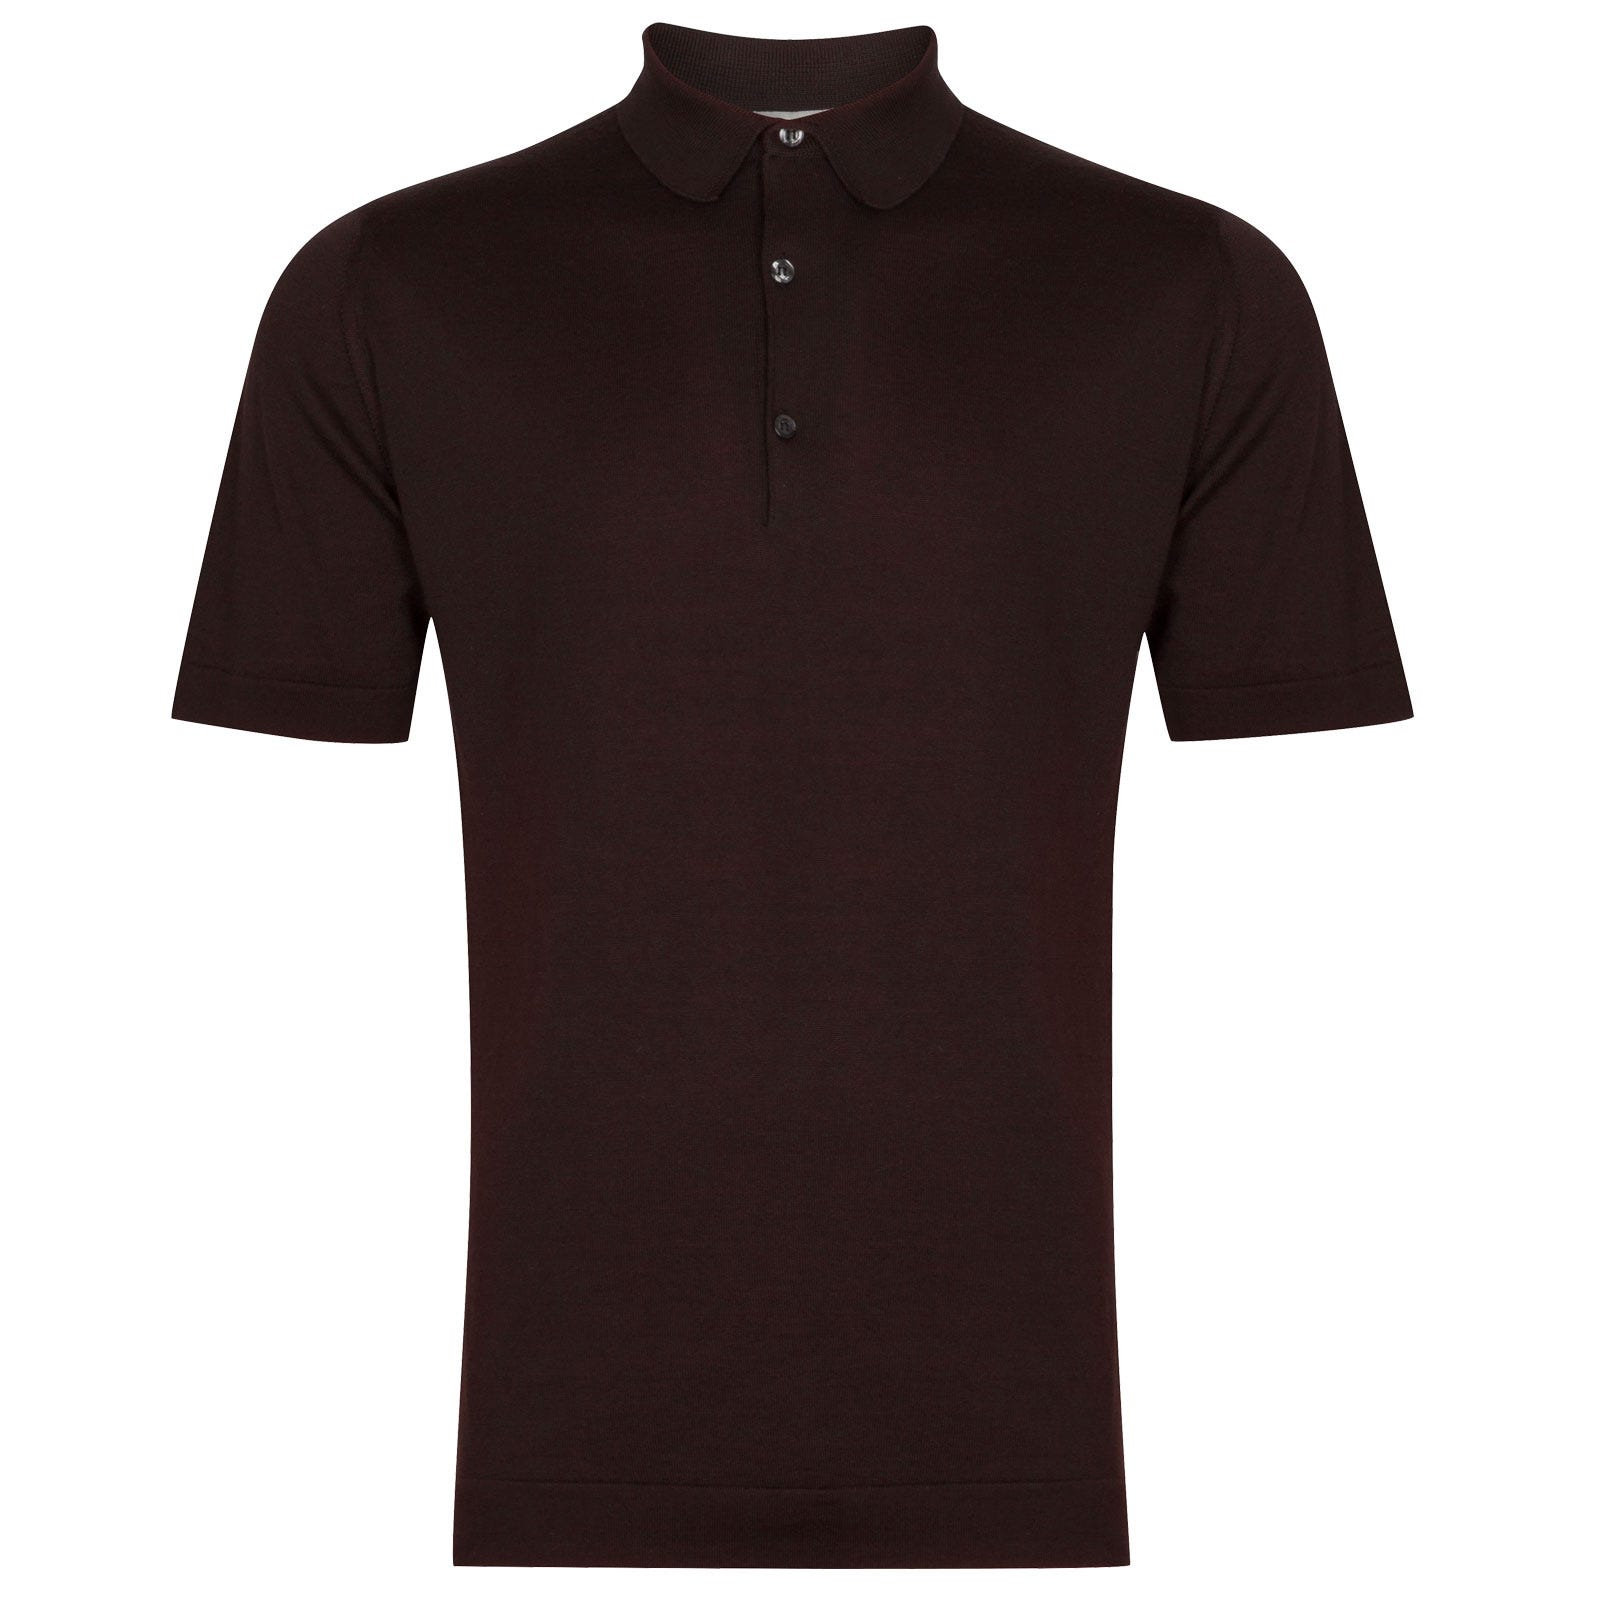 John Smedley Mycroft in Dark Leather Shirt-LGE